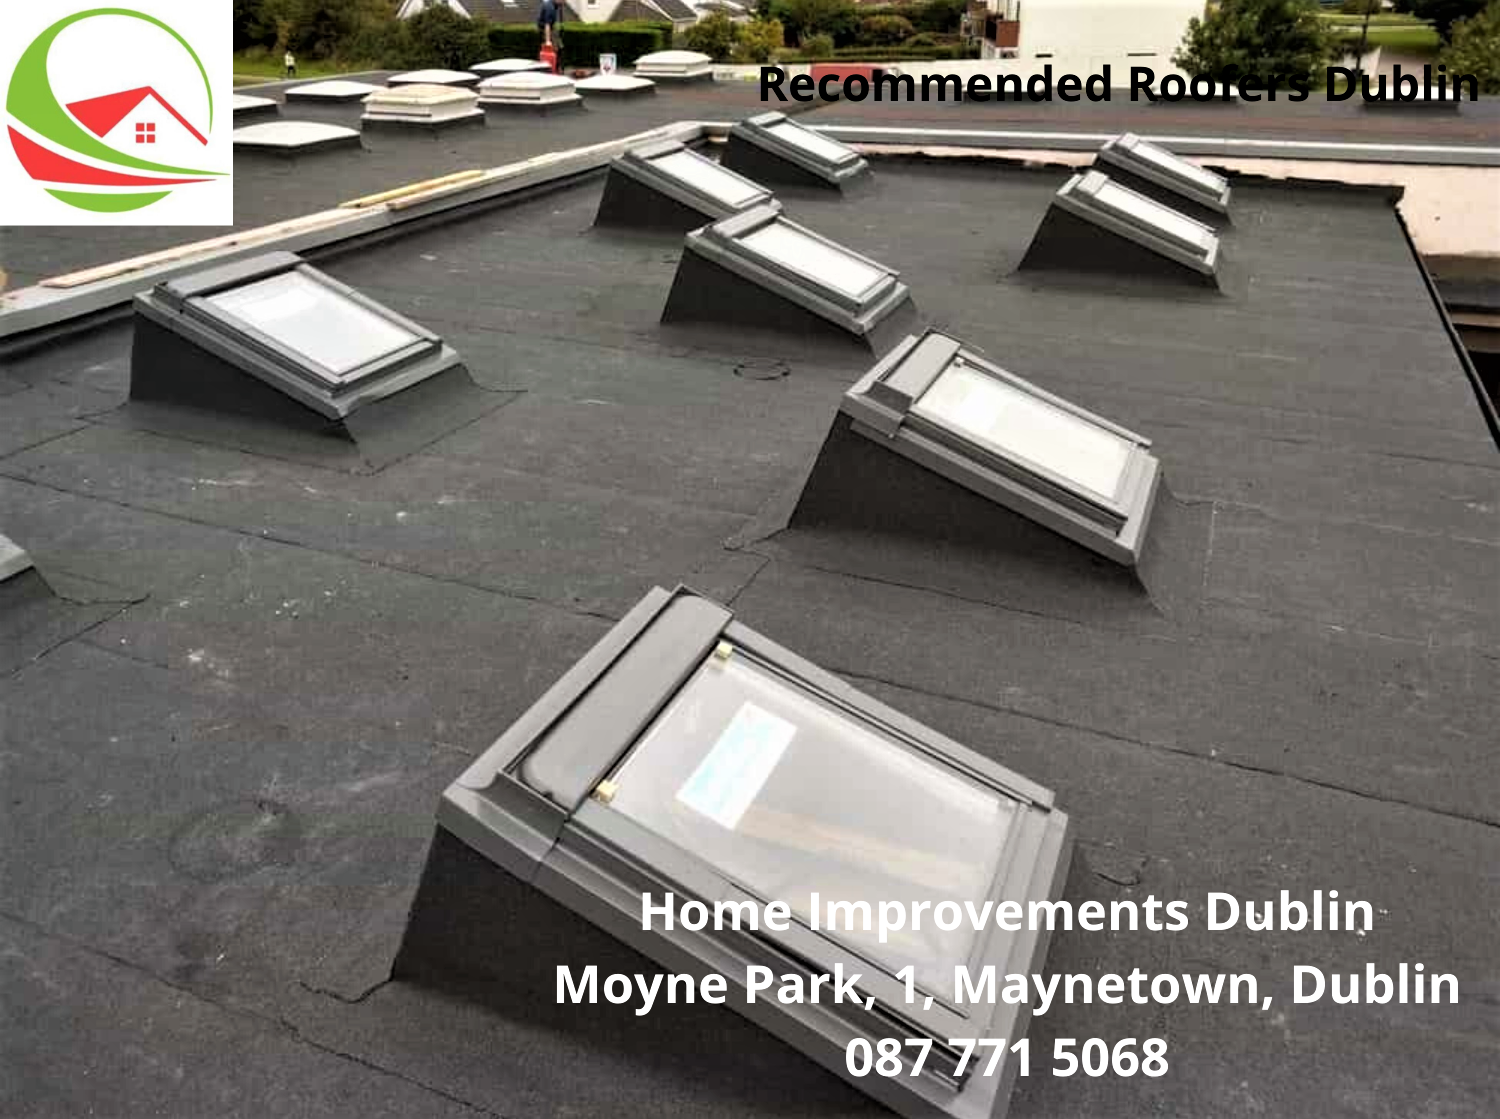 Home Improvements Dublin Extends Roofing Service Area to Dublin 15